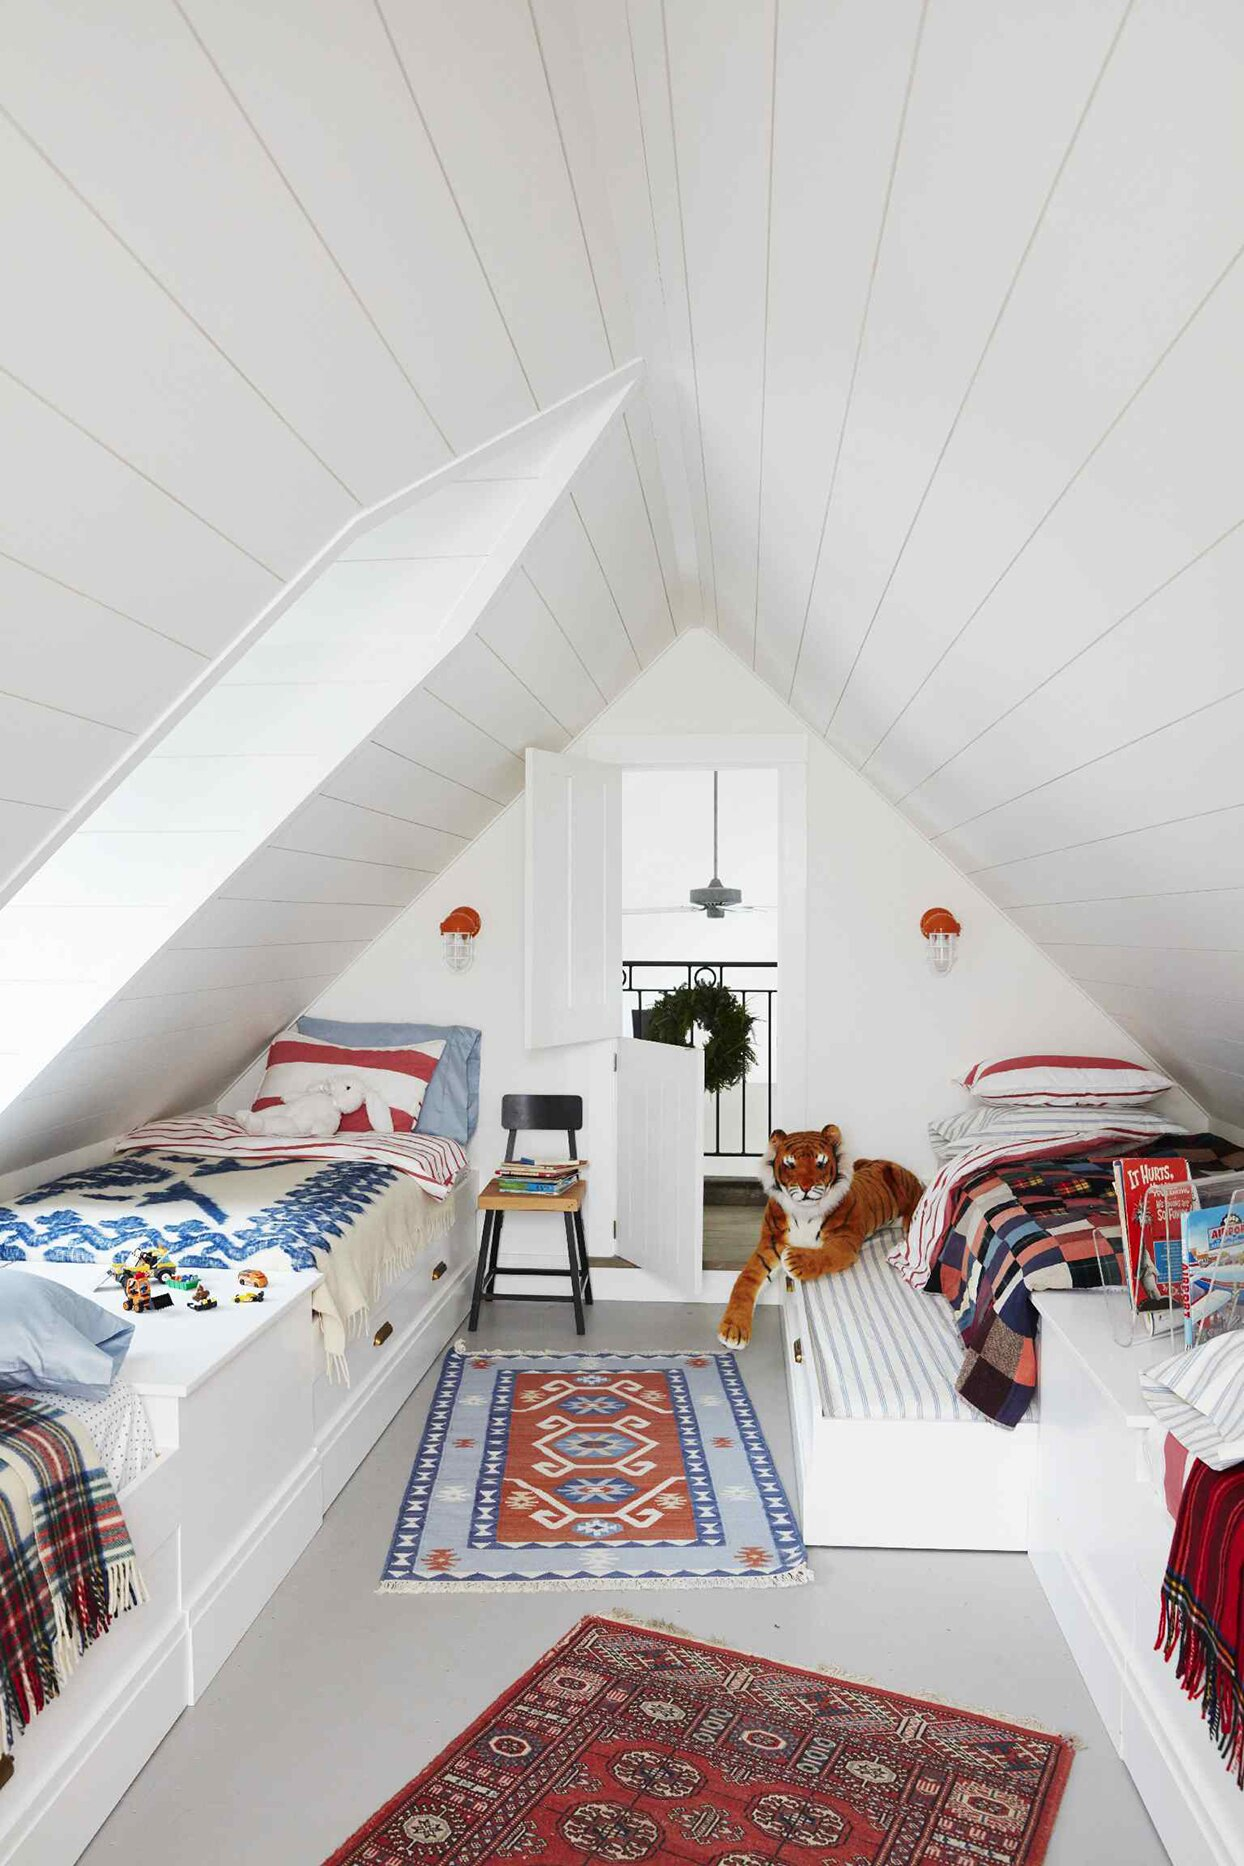 attic loft in a farmhouse with built-in bunks with trundle beds